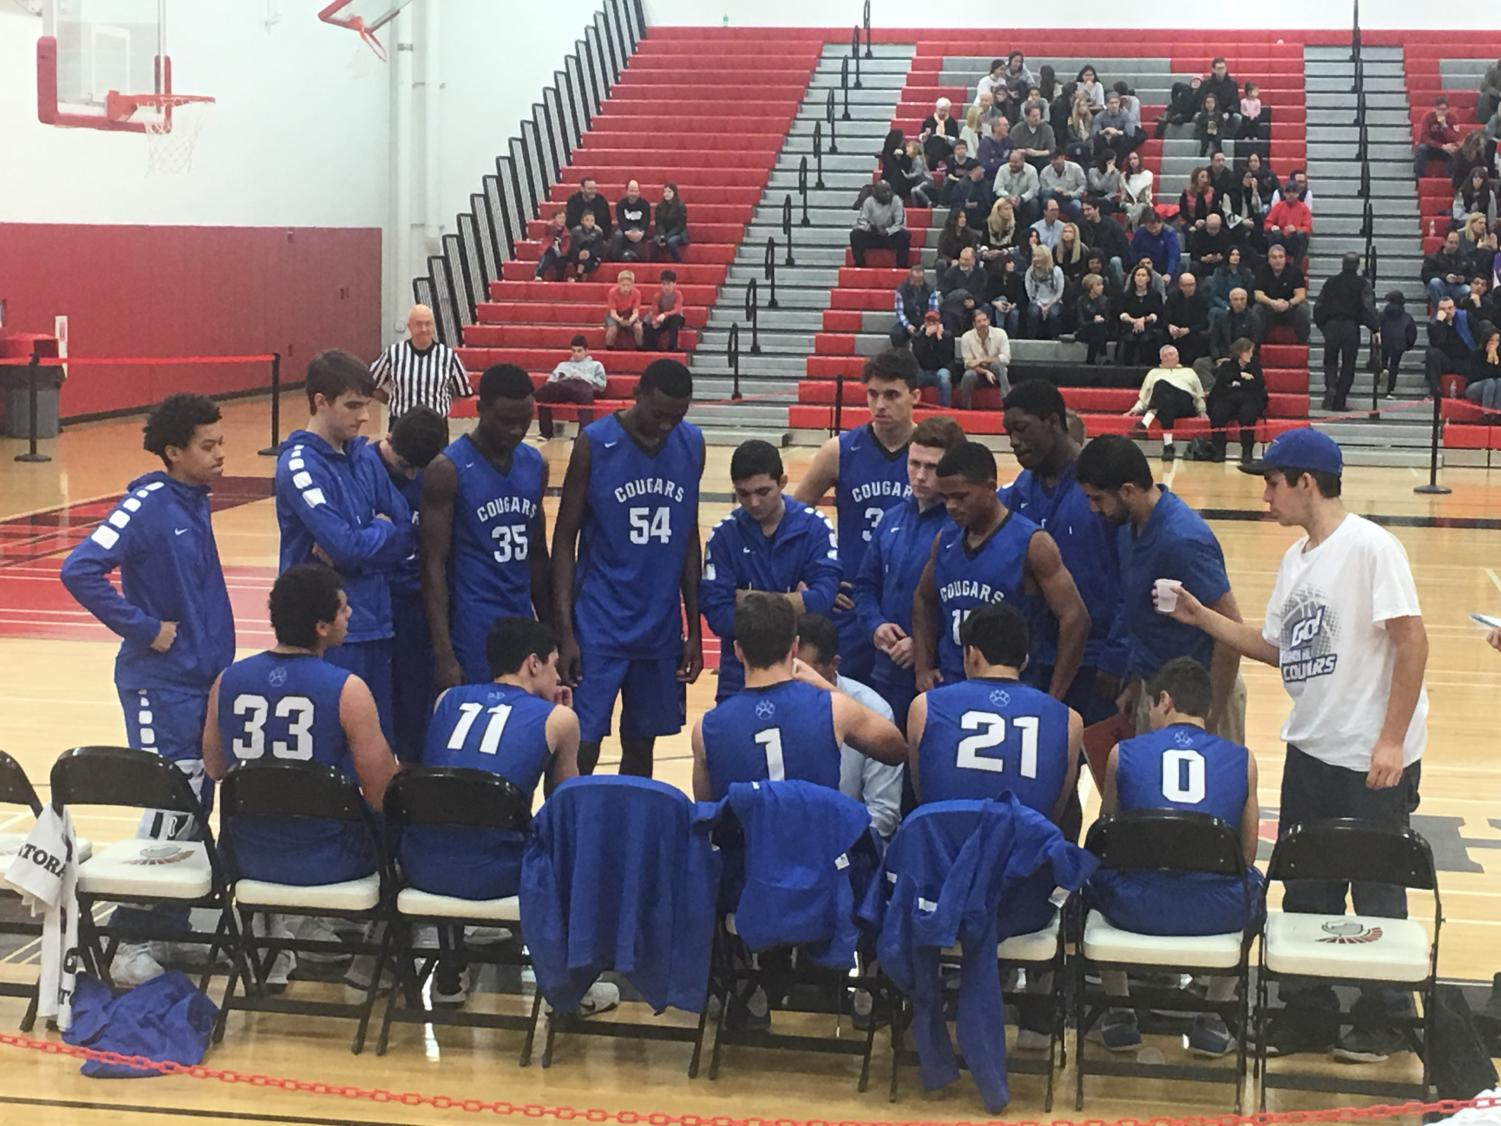 The boys baskeball team huddles around Coach McCarty during a timeout in their game at Deerfield on Dec. 2. The Cougars lost to the Warriors 65-30.